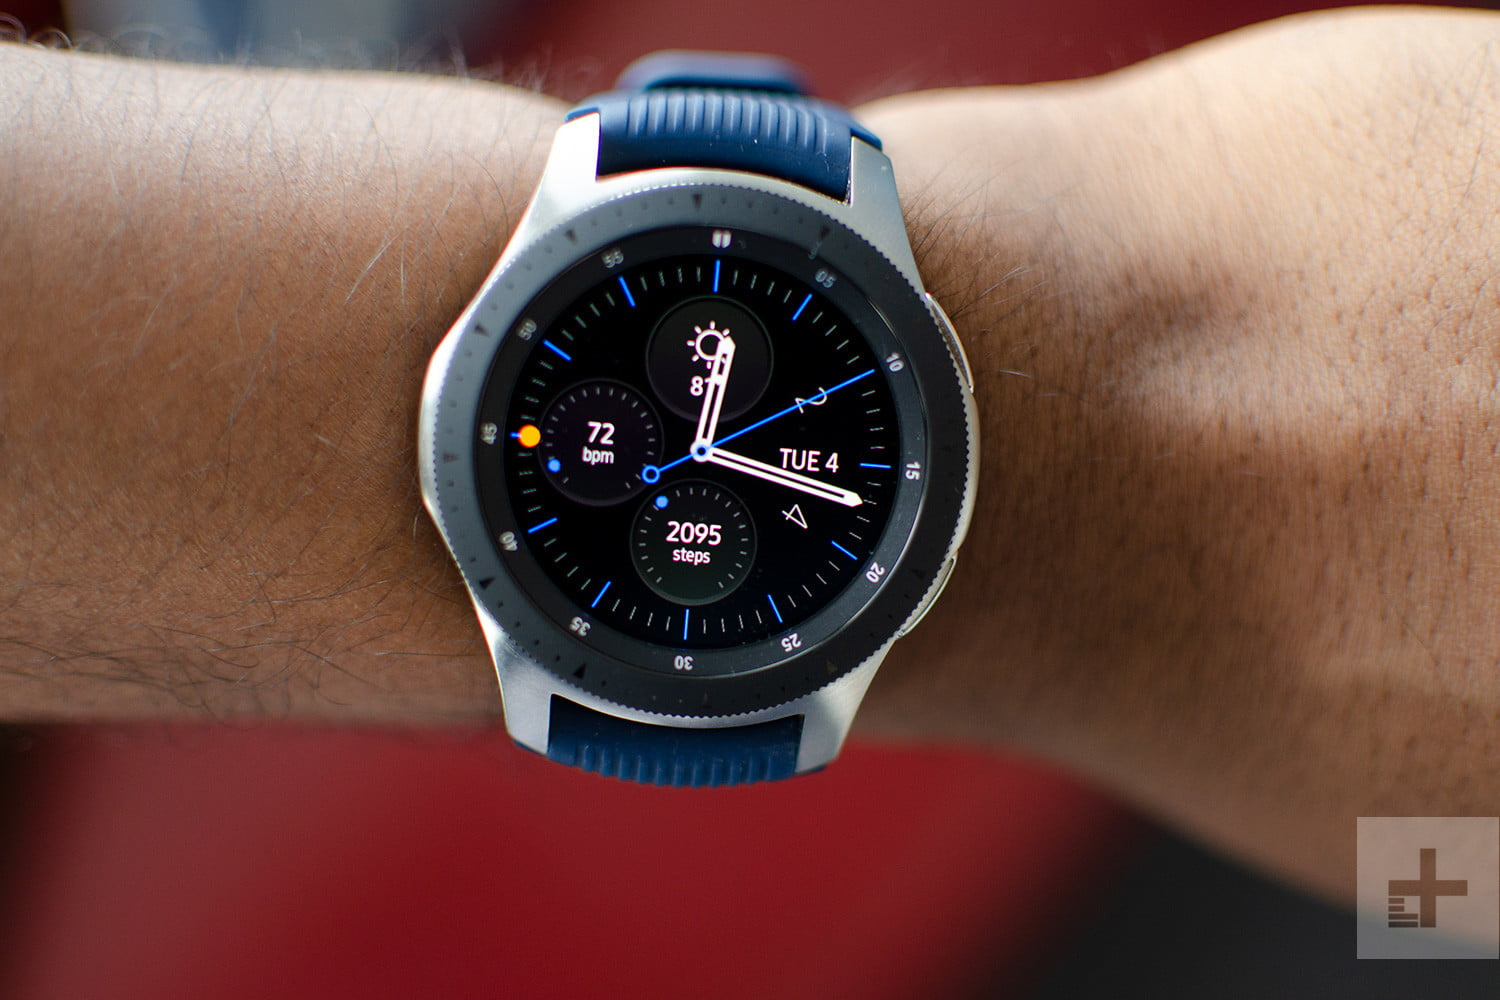 This Samsung Galaxy Watch Deal At Walmart Is A Perfect Manual Guide